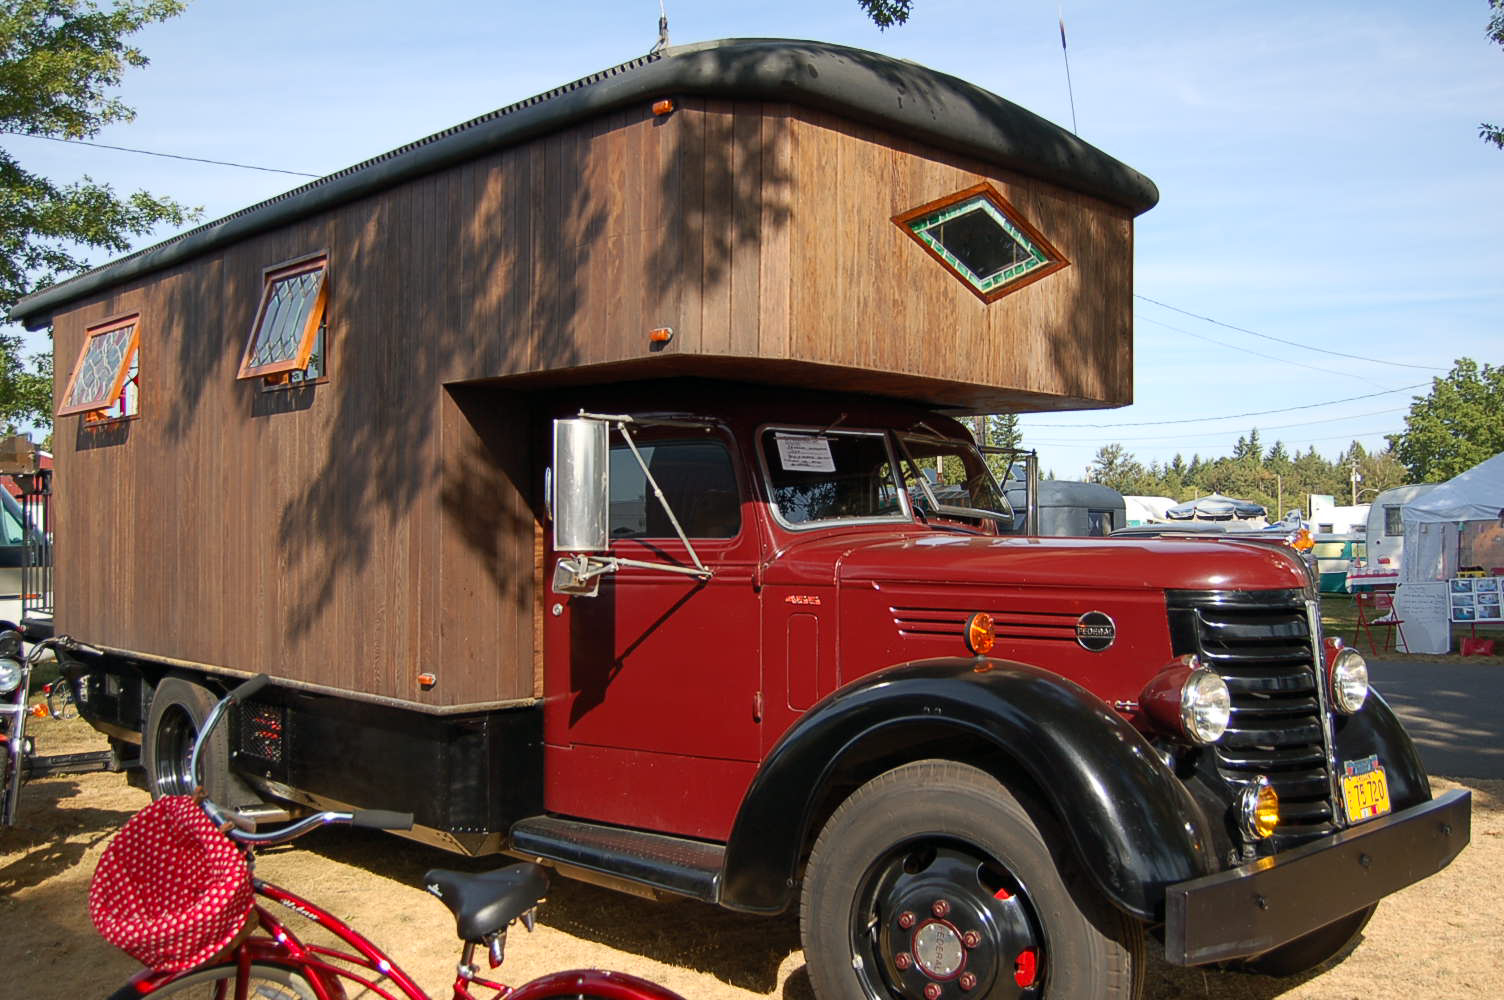 1959 Federal Truck Skillfully Turned Into An Huge Based Camper With Custom Stained Glass Windows